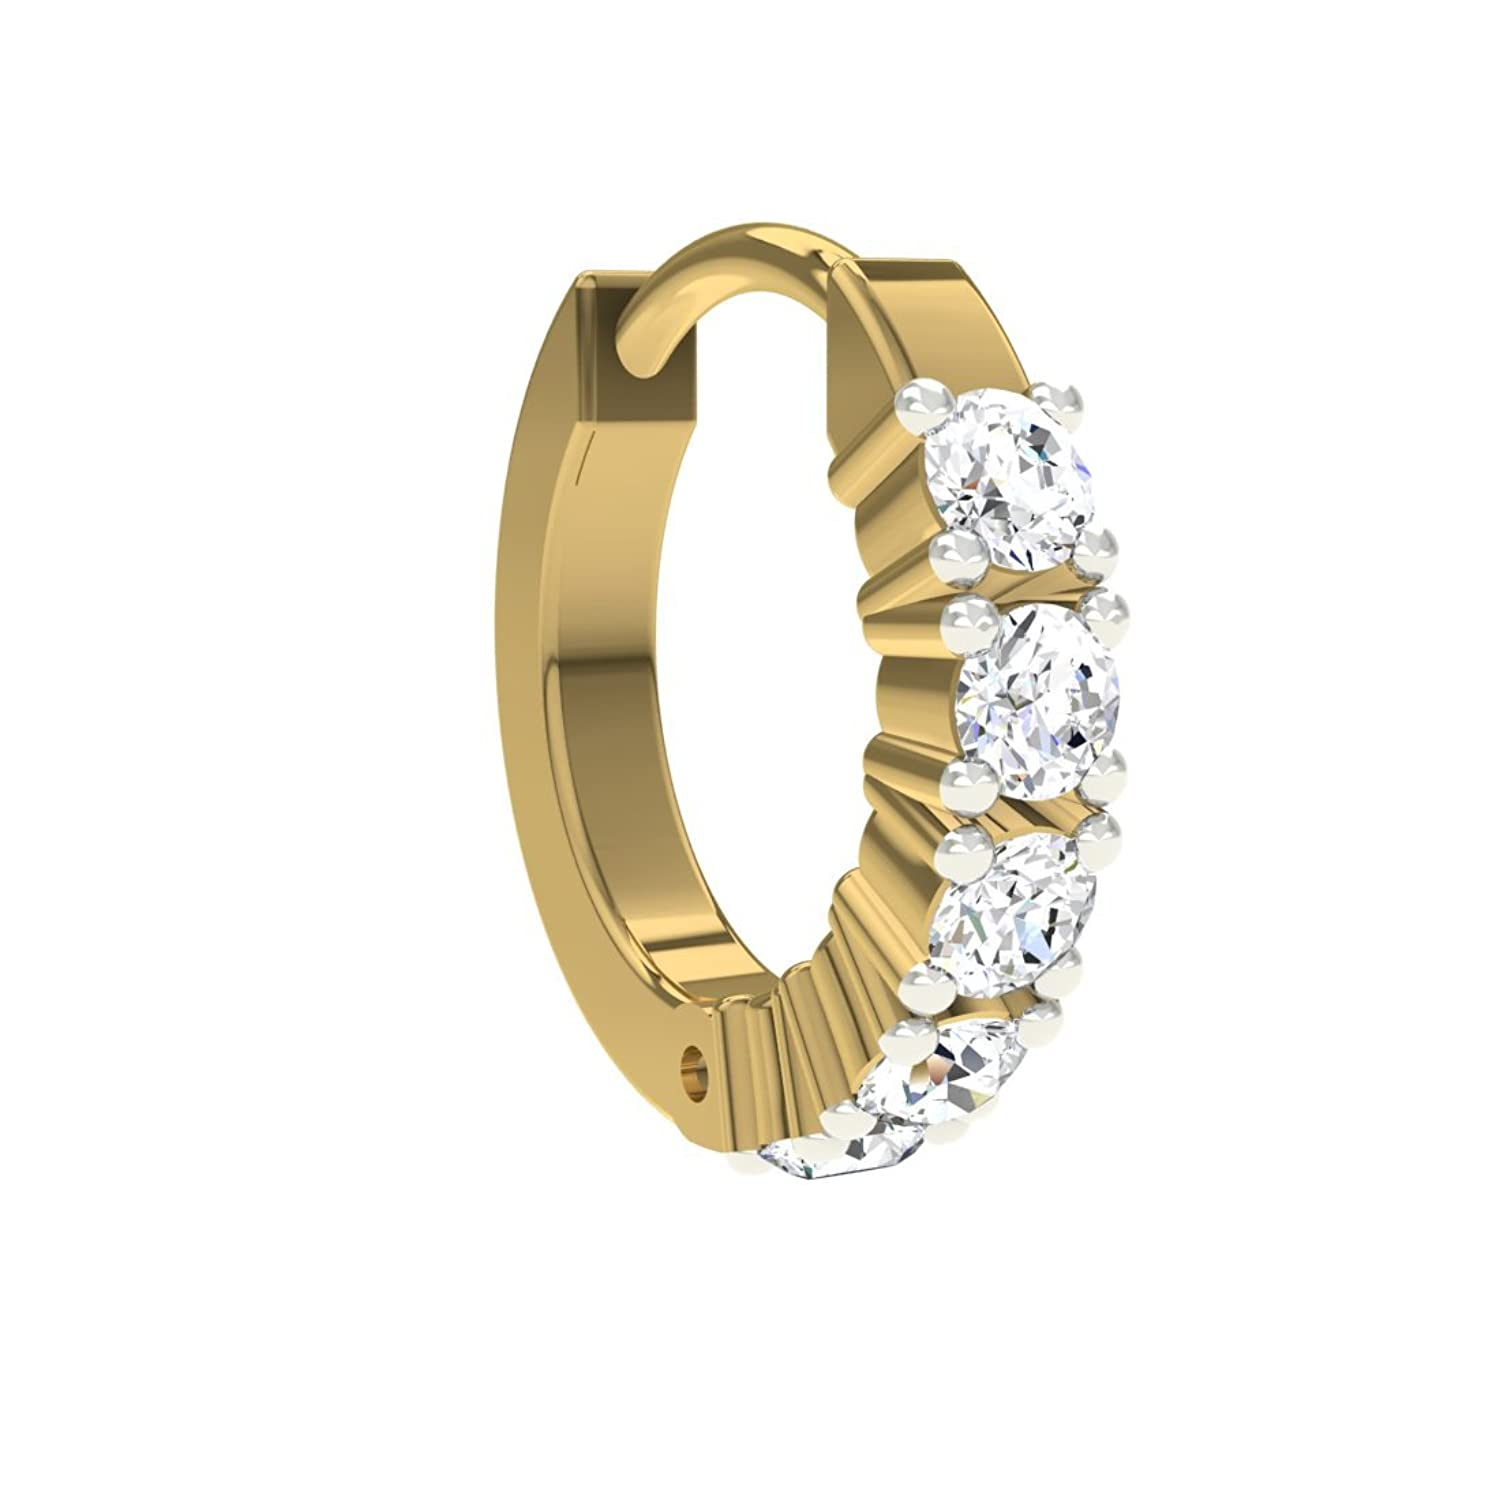 for brilliant diamonds gold yellow ring cut with diamond best buy india titan rings price round women product online tanishq at finger jewellery